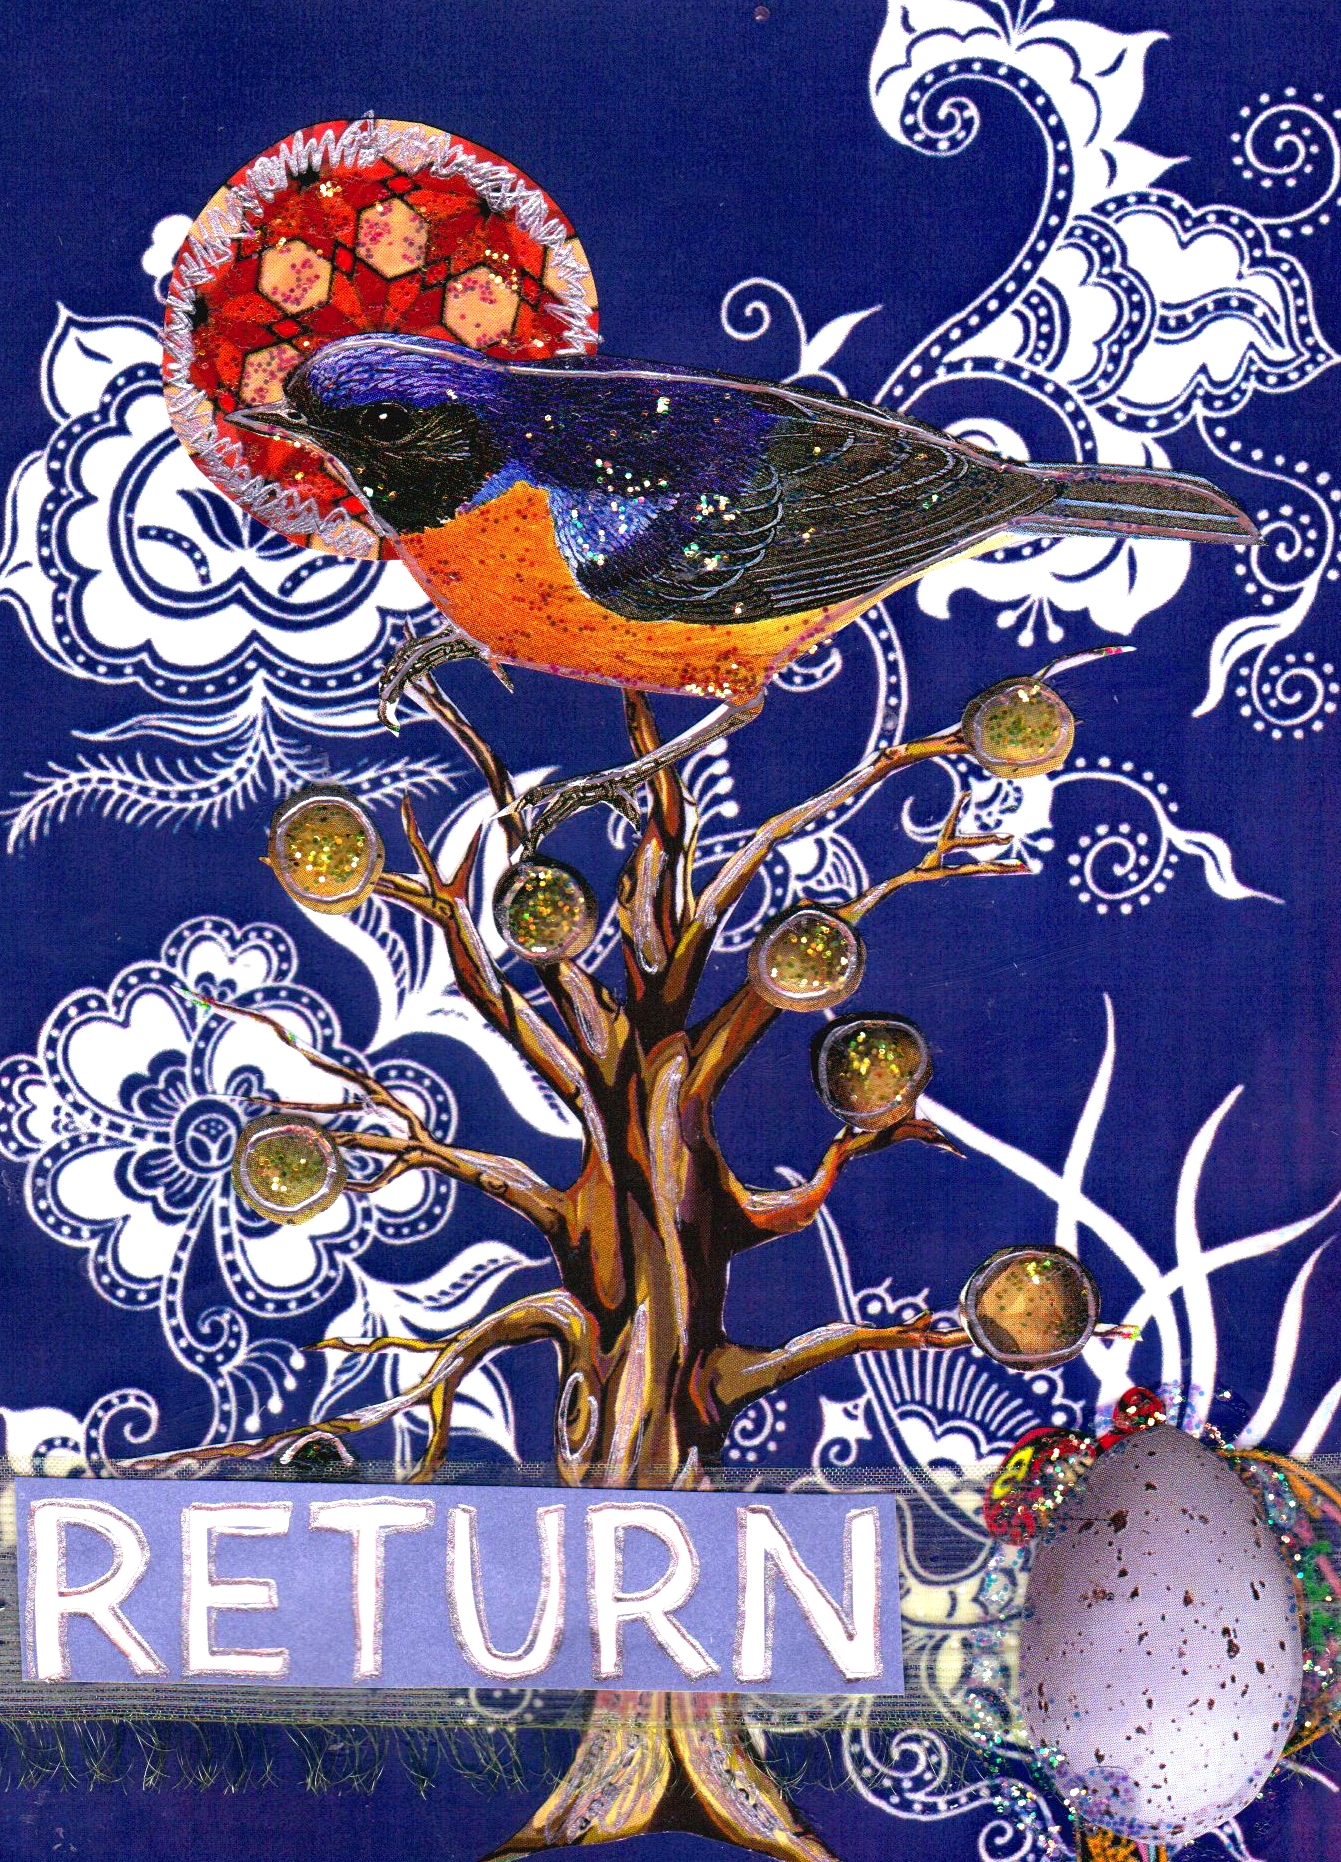 Return, mixed media collage by Courtney Putnam